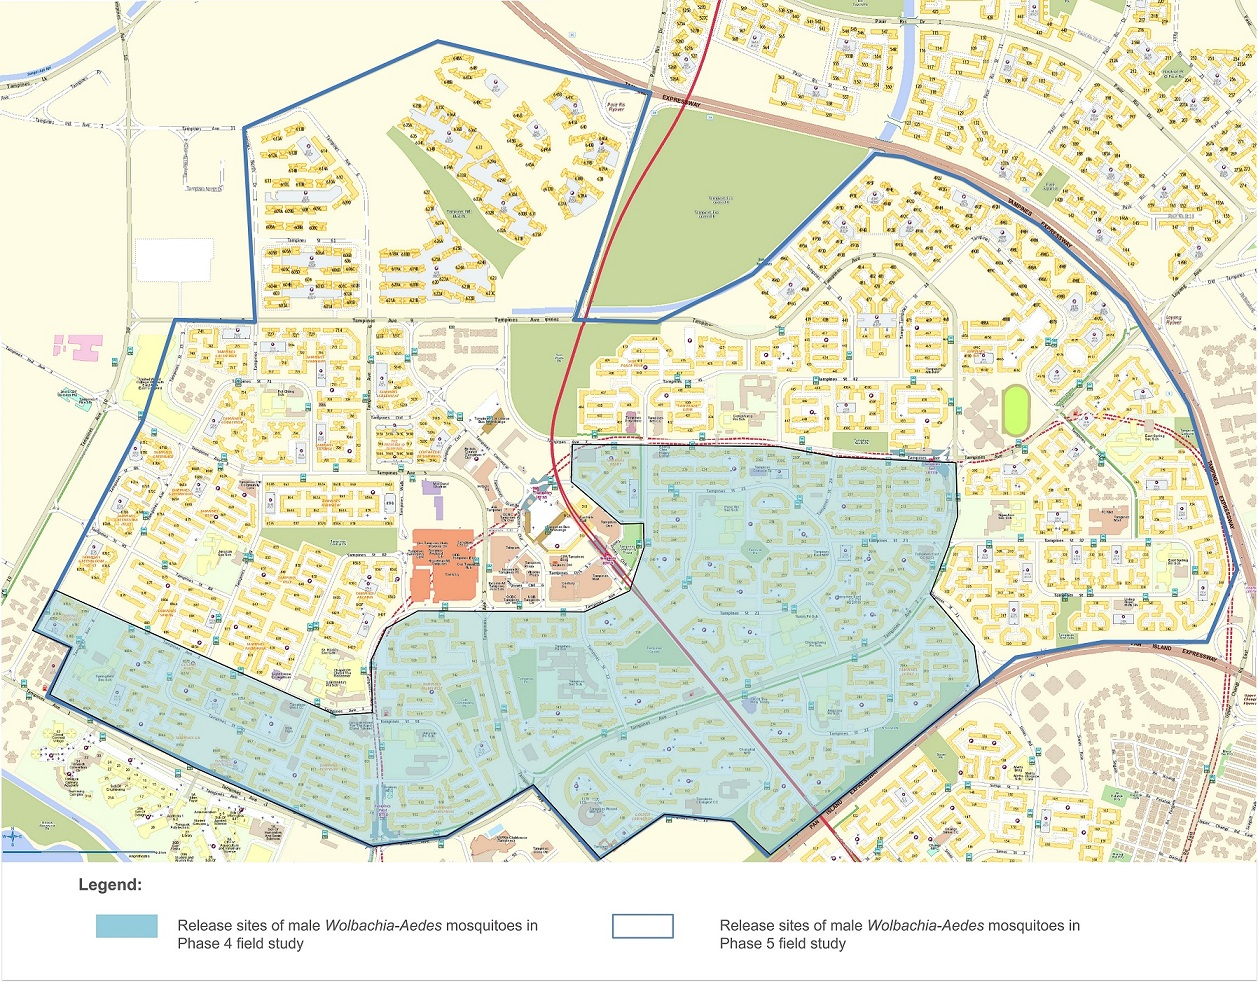 Location Maps of Study Sites for Phase 5 - Tampines